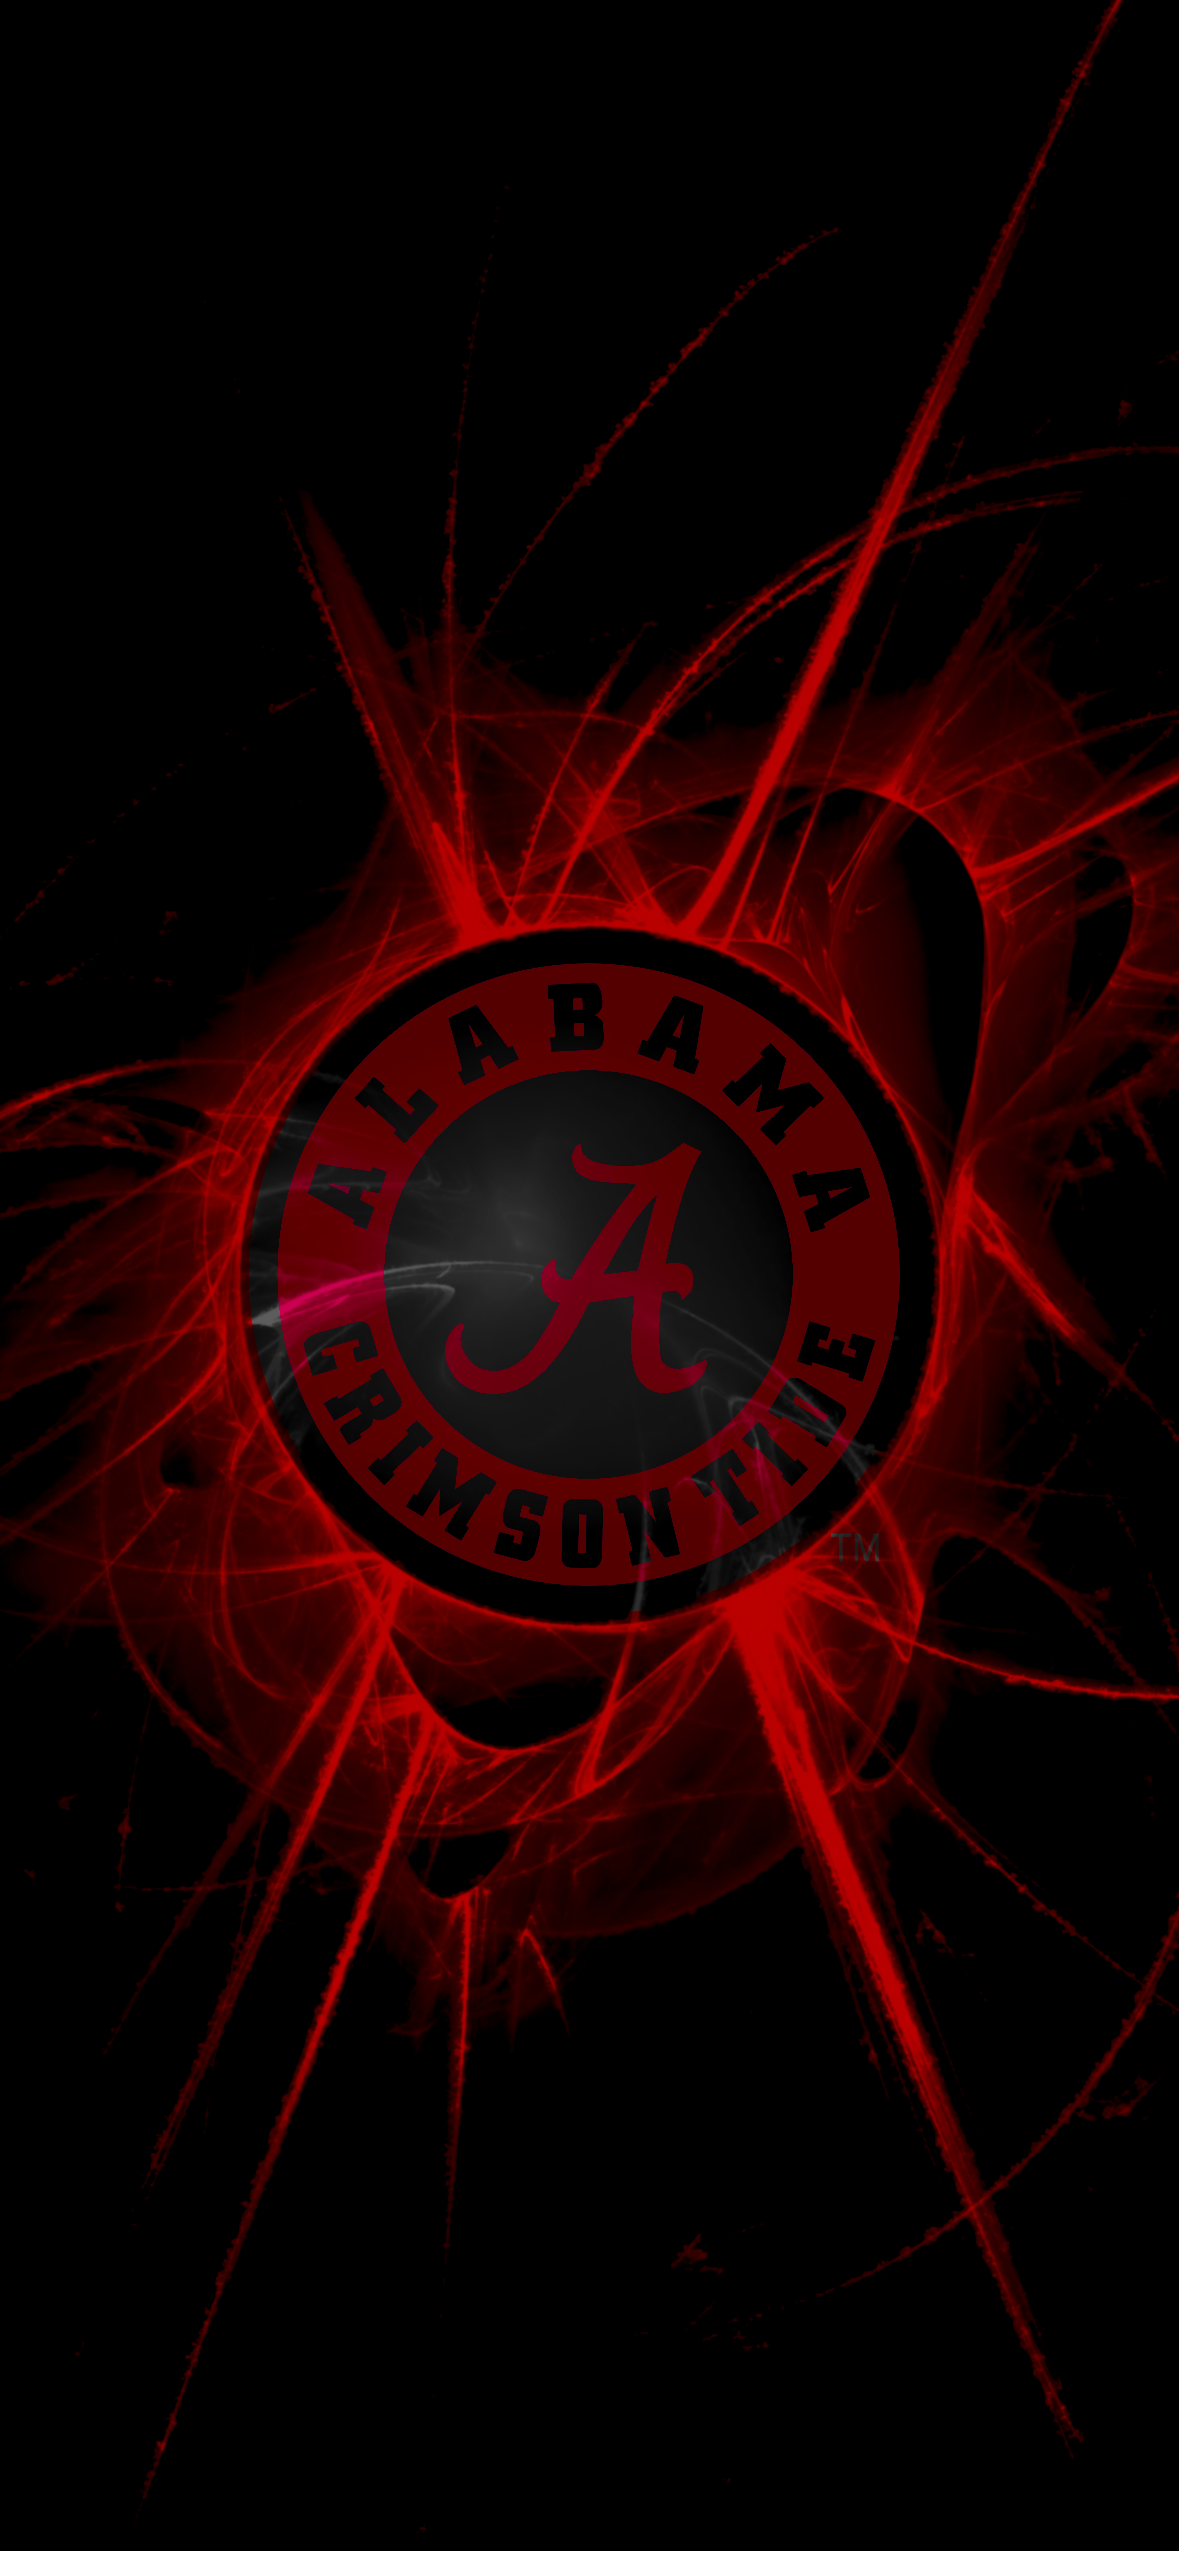 Burst Rd Alabama Wallpaper Alabama Football Roll Tide Alabama Crimson Tide Logo